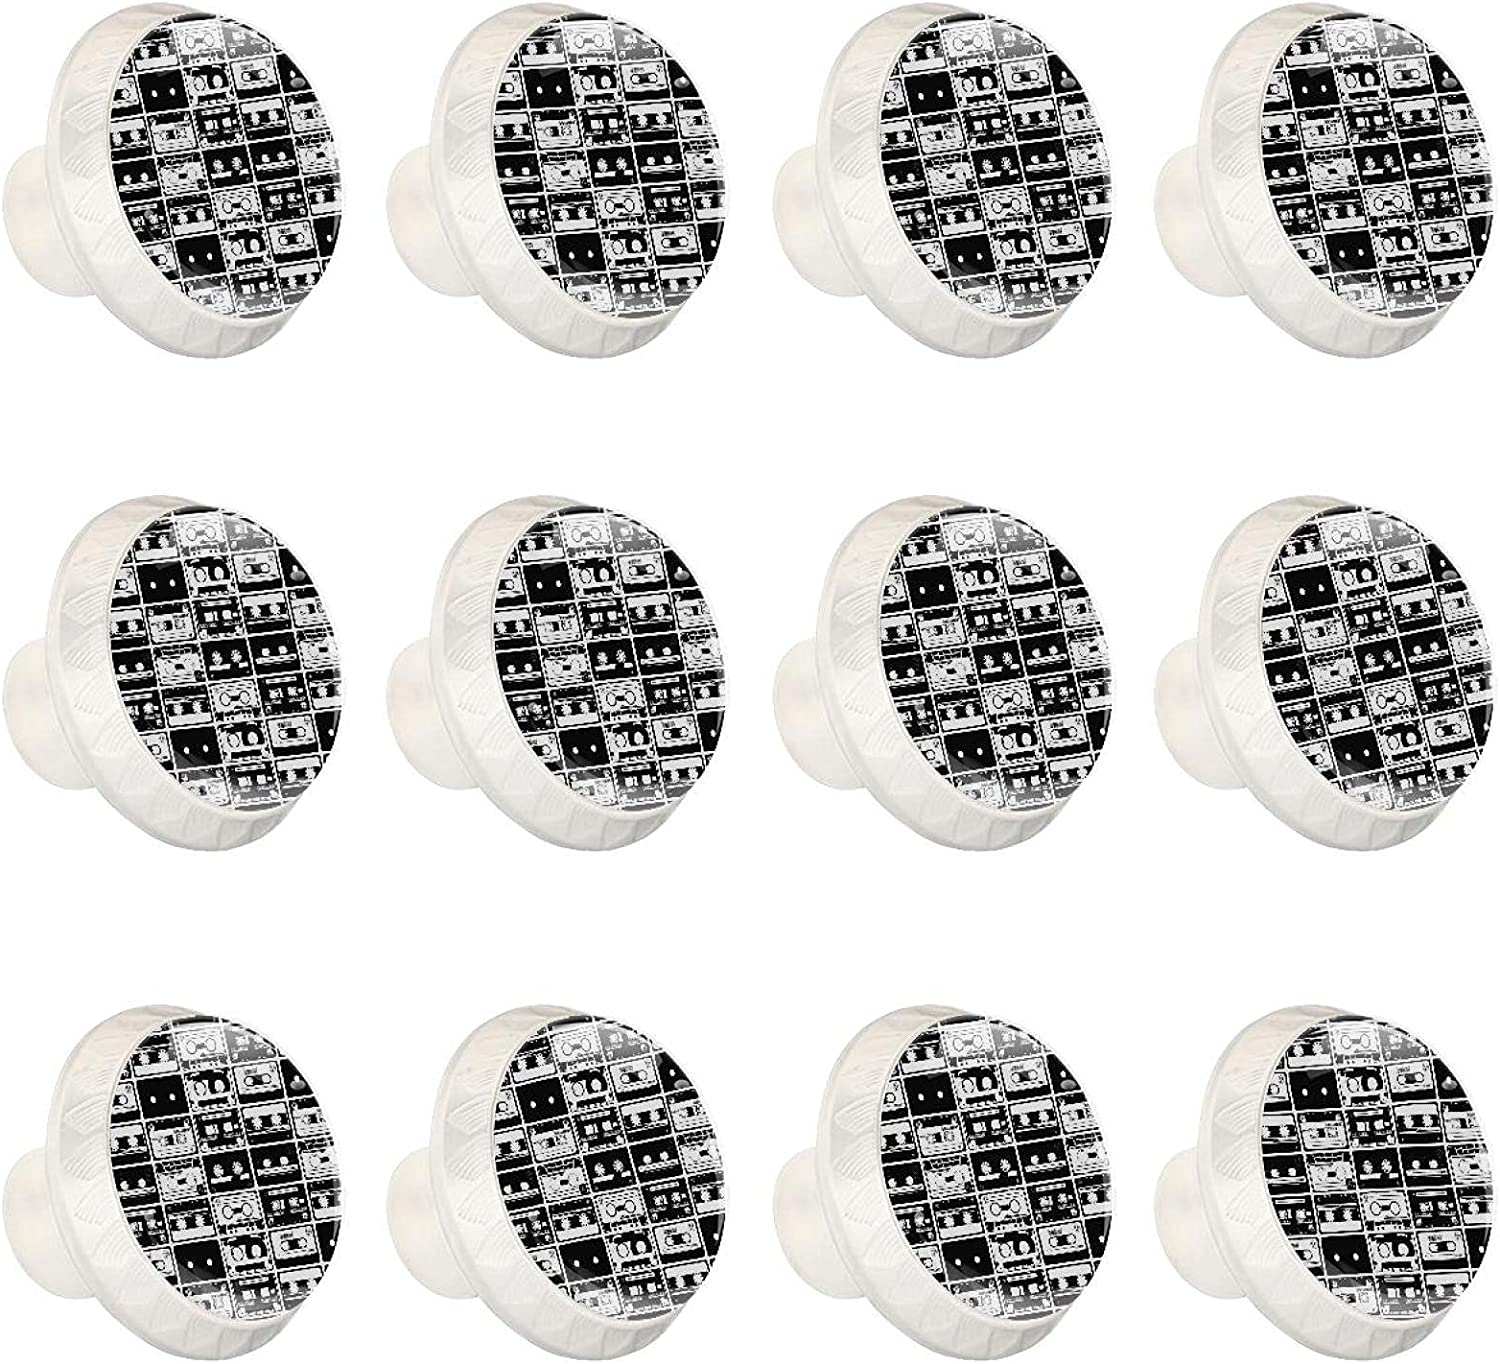 Ranking integrated 1st place Black and Houston Mall White Camera Hardware Knobs Handle Cupboard Round Pull